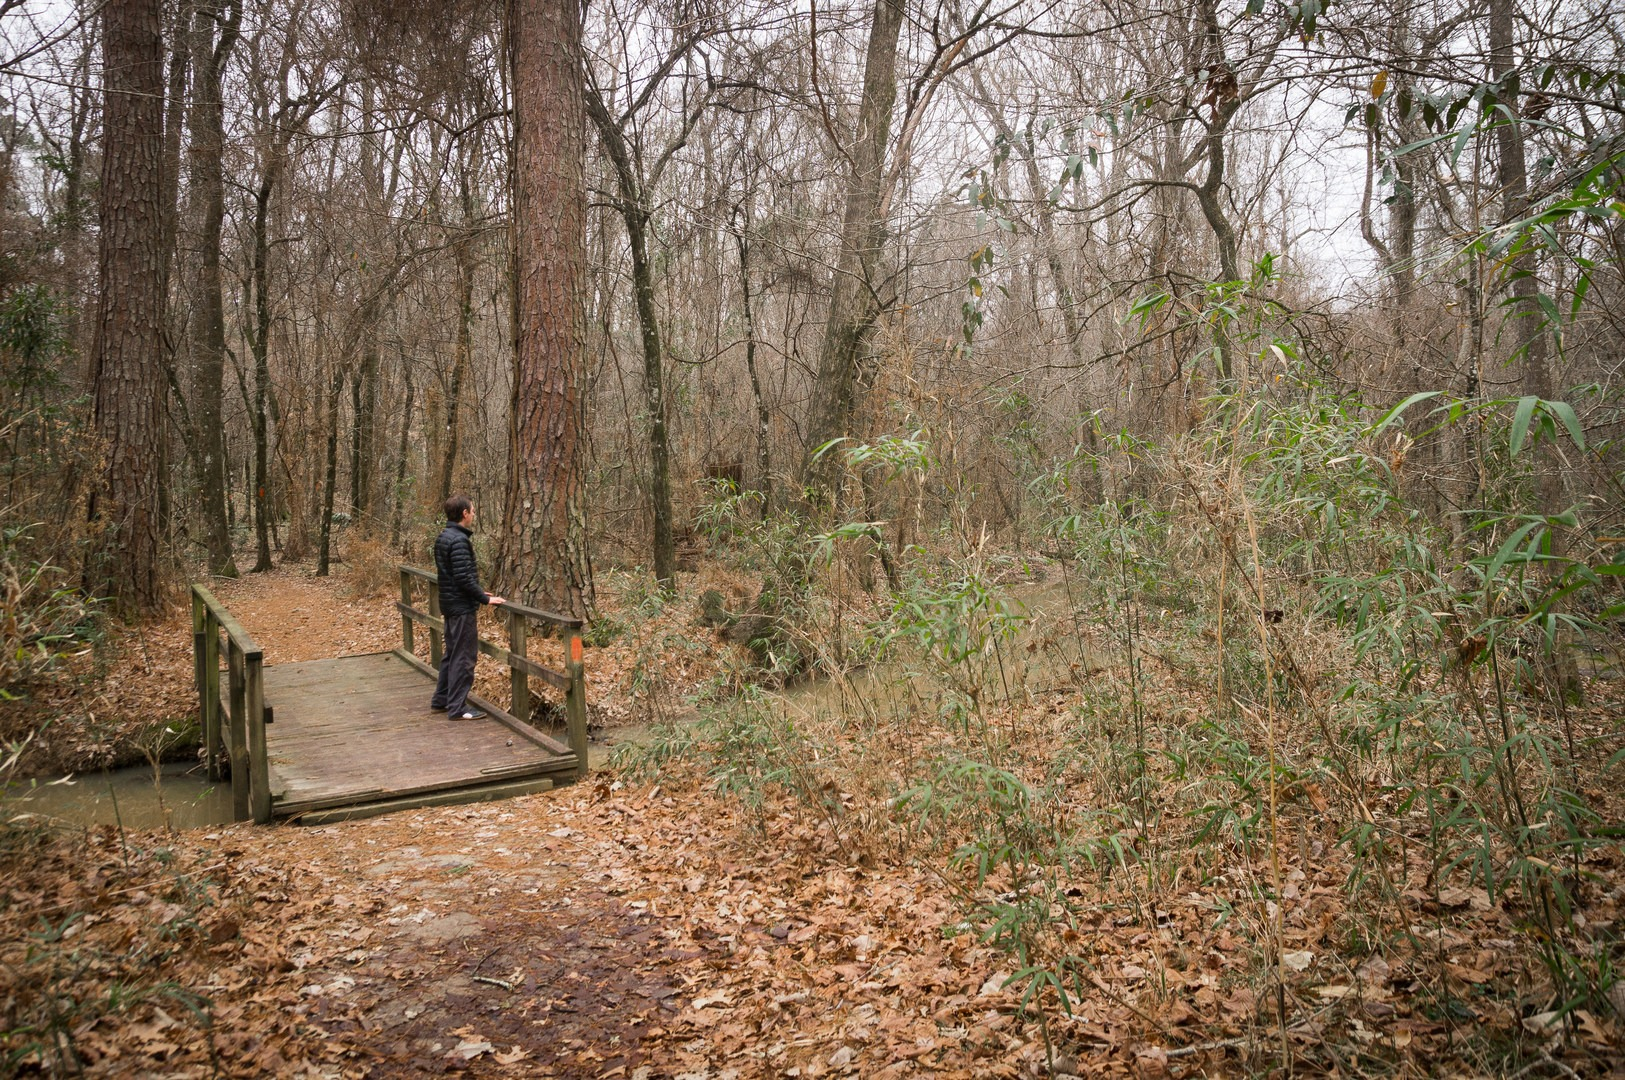 Chicot State Park Hiking Trail | Outdoor Project on